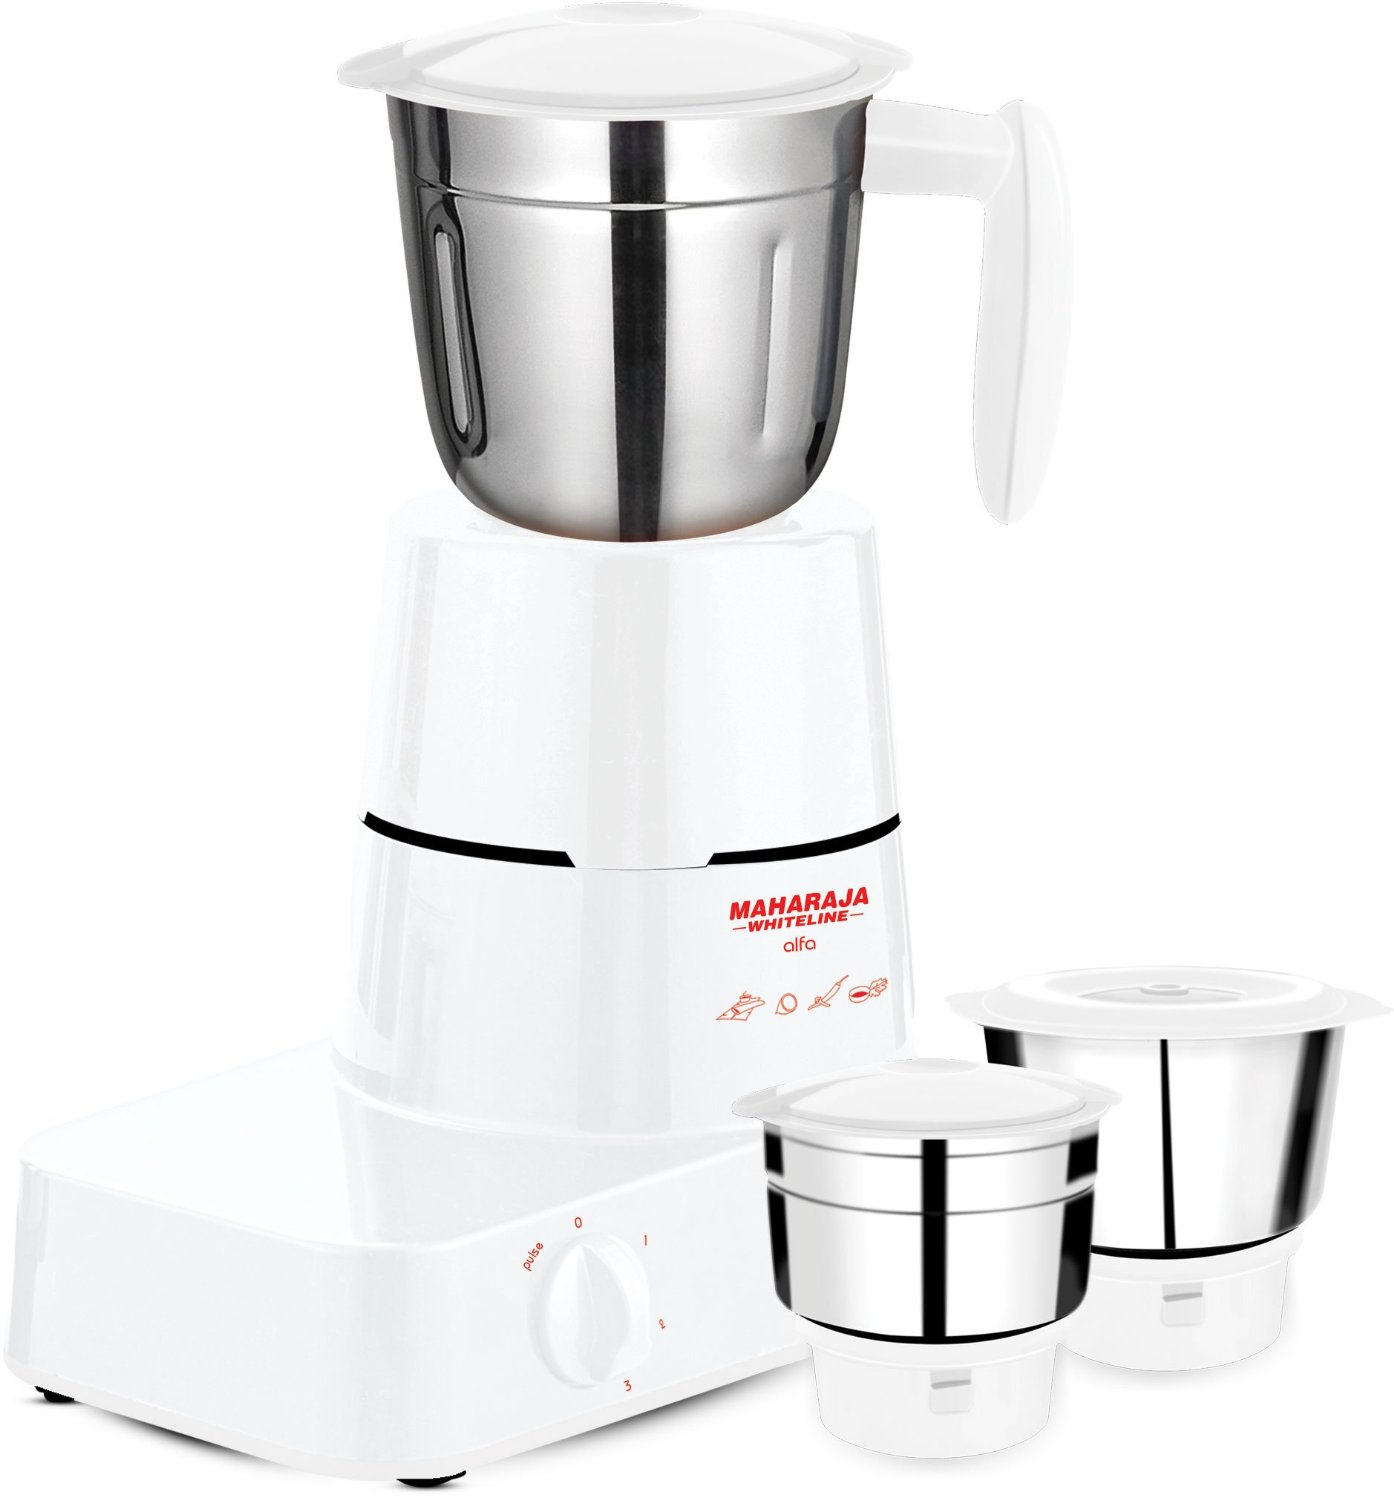 Maharaja Whiteline Food Processor Service Centre